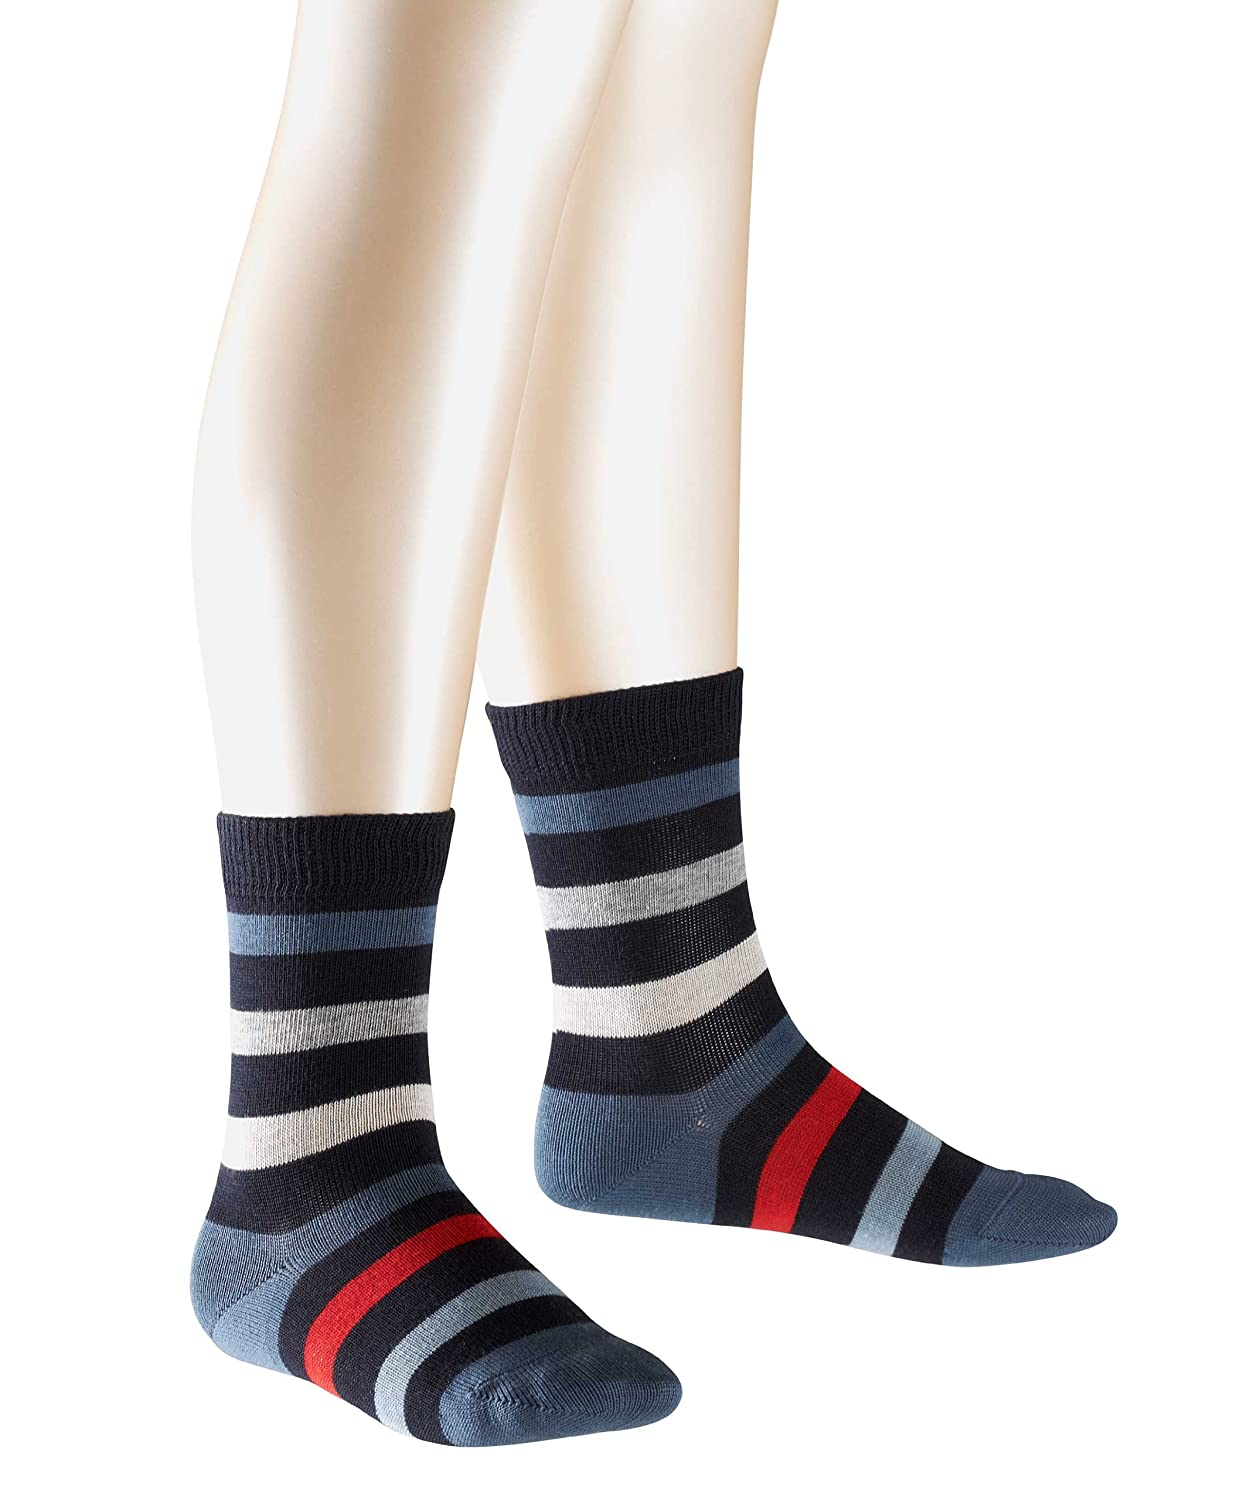 FALKE Unisex - Kinder Socke 10220 New Stripe SO FALKE KGaA